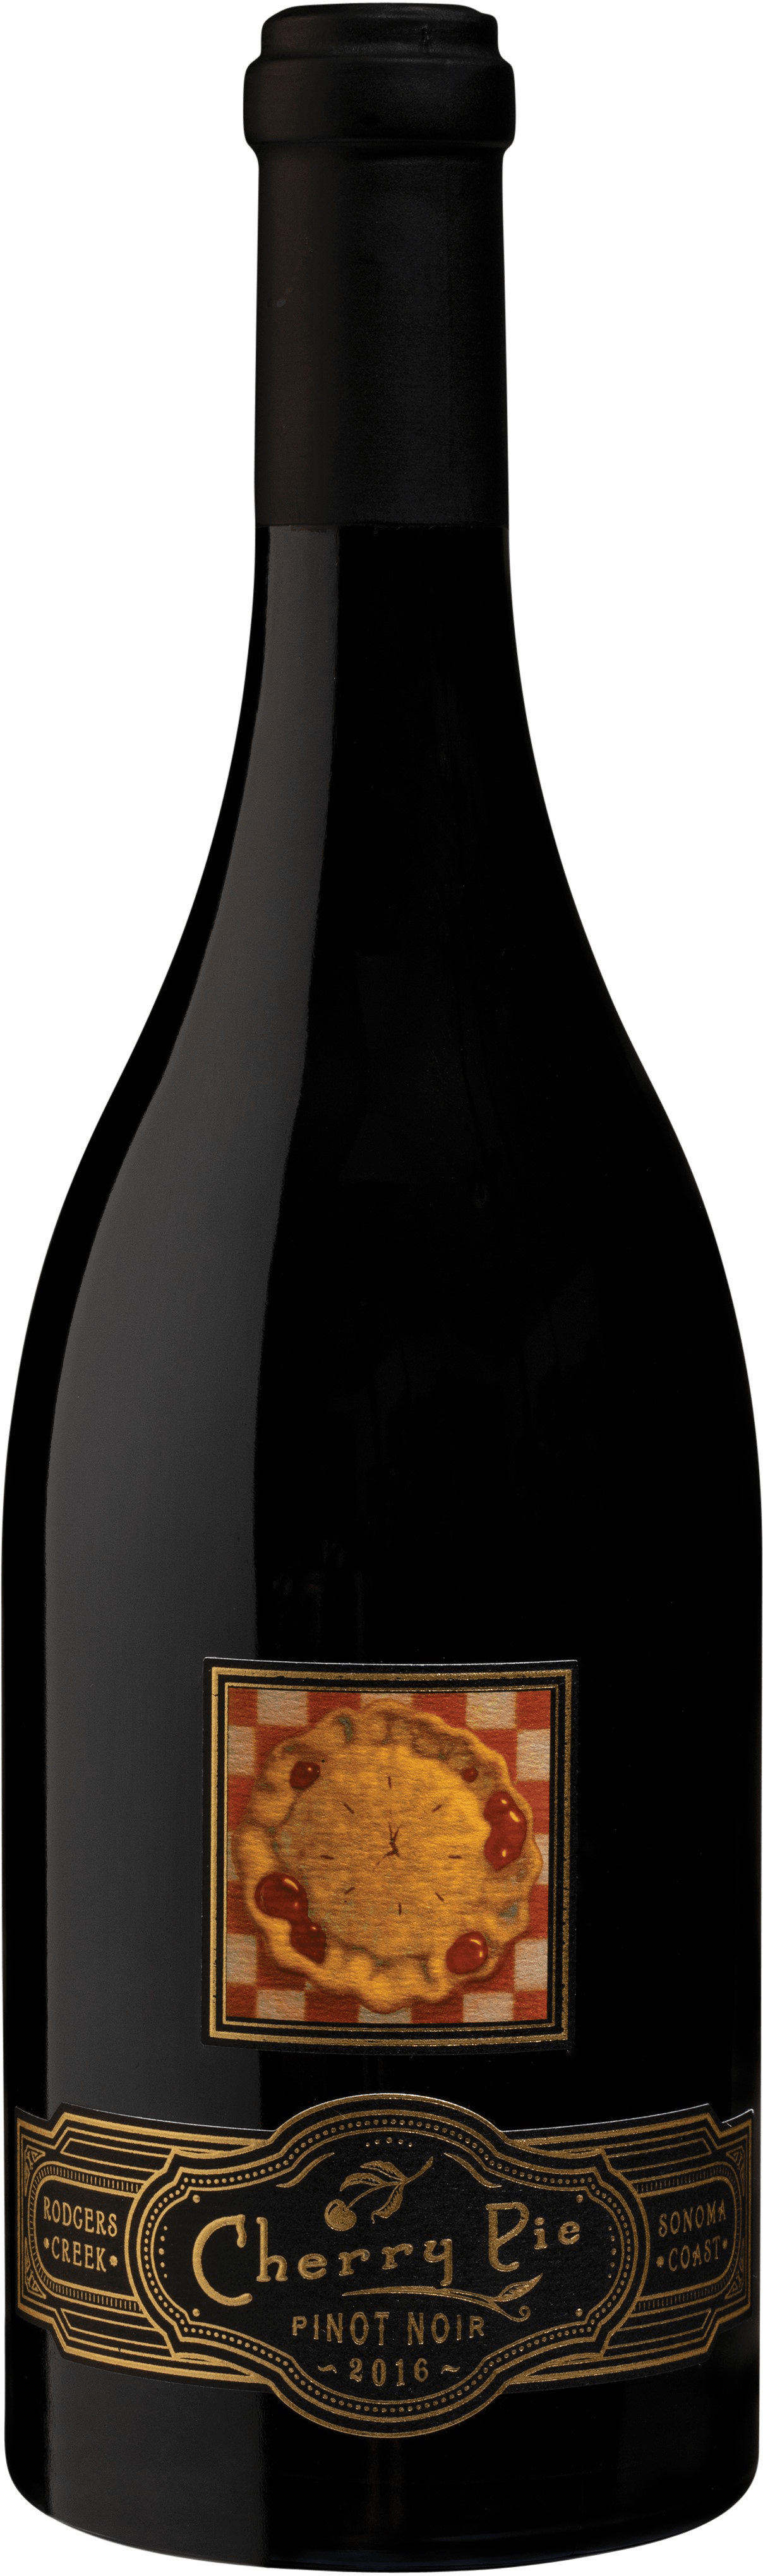 2016 Cherry Pie Rodgers Creek Pinot Noir, Sonoma Coast, 750ml